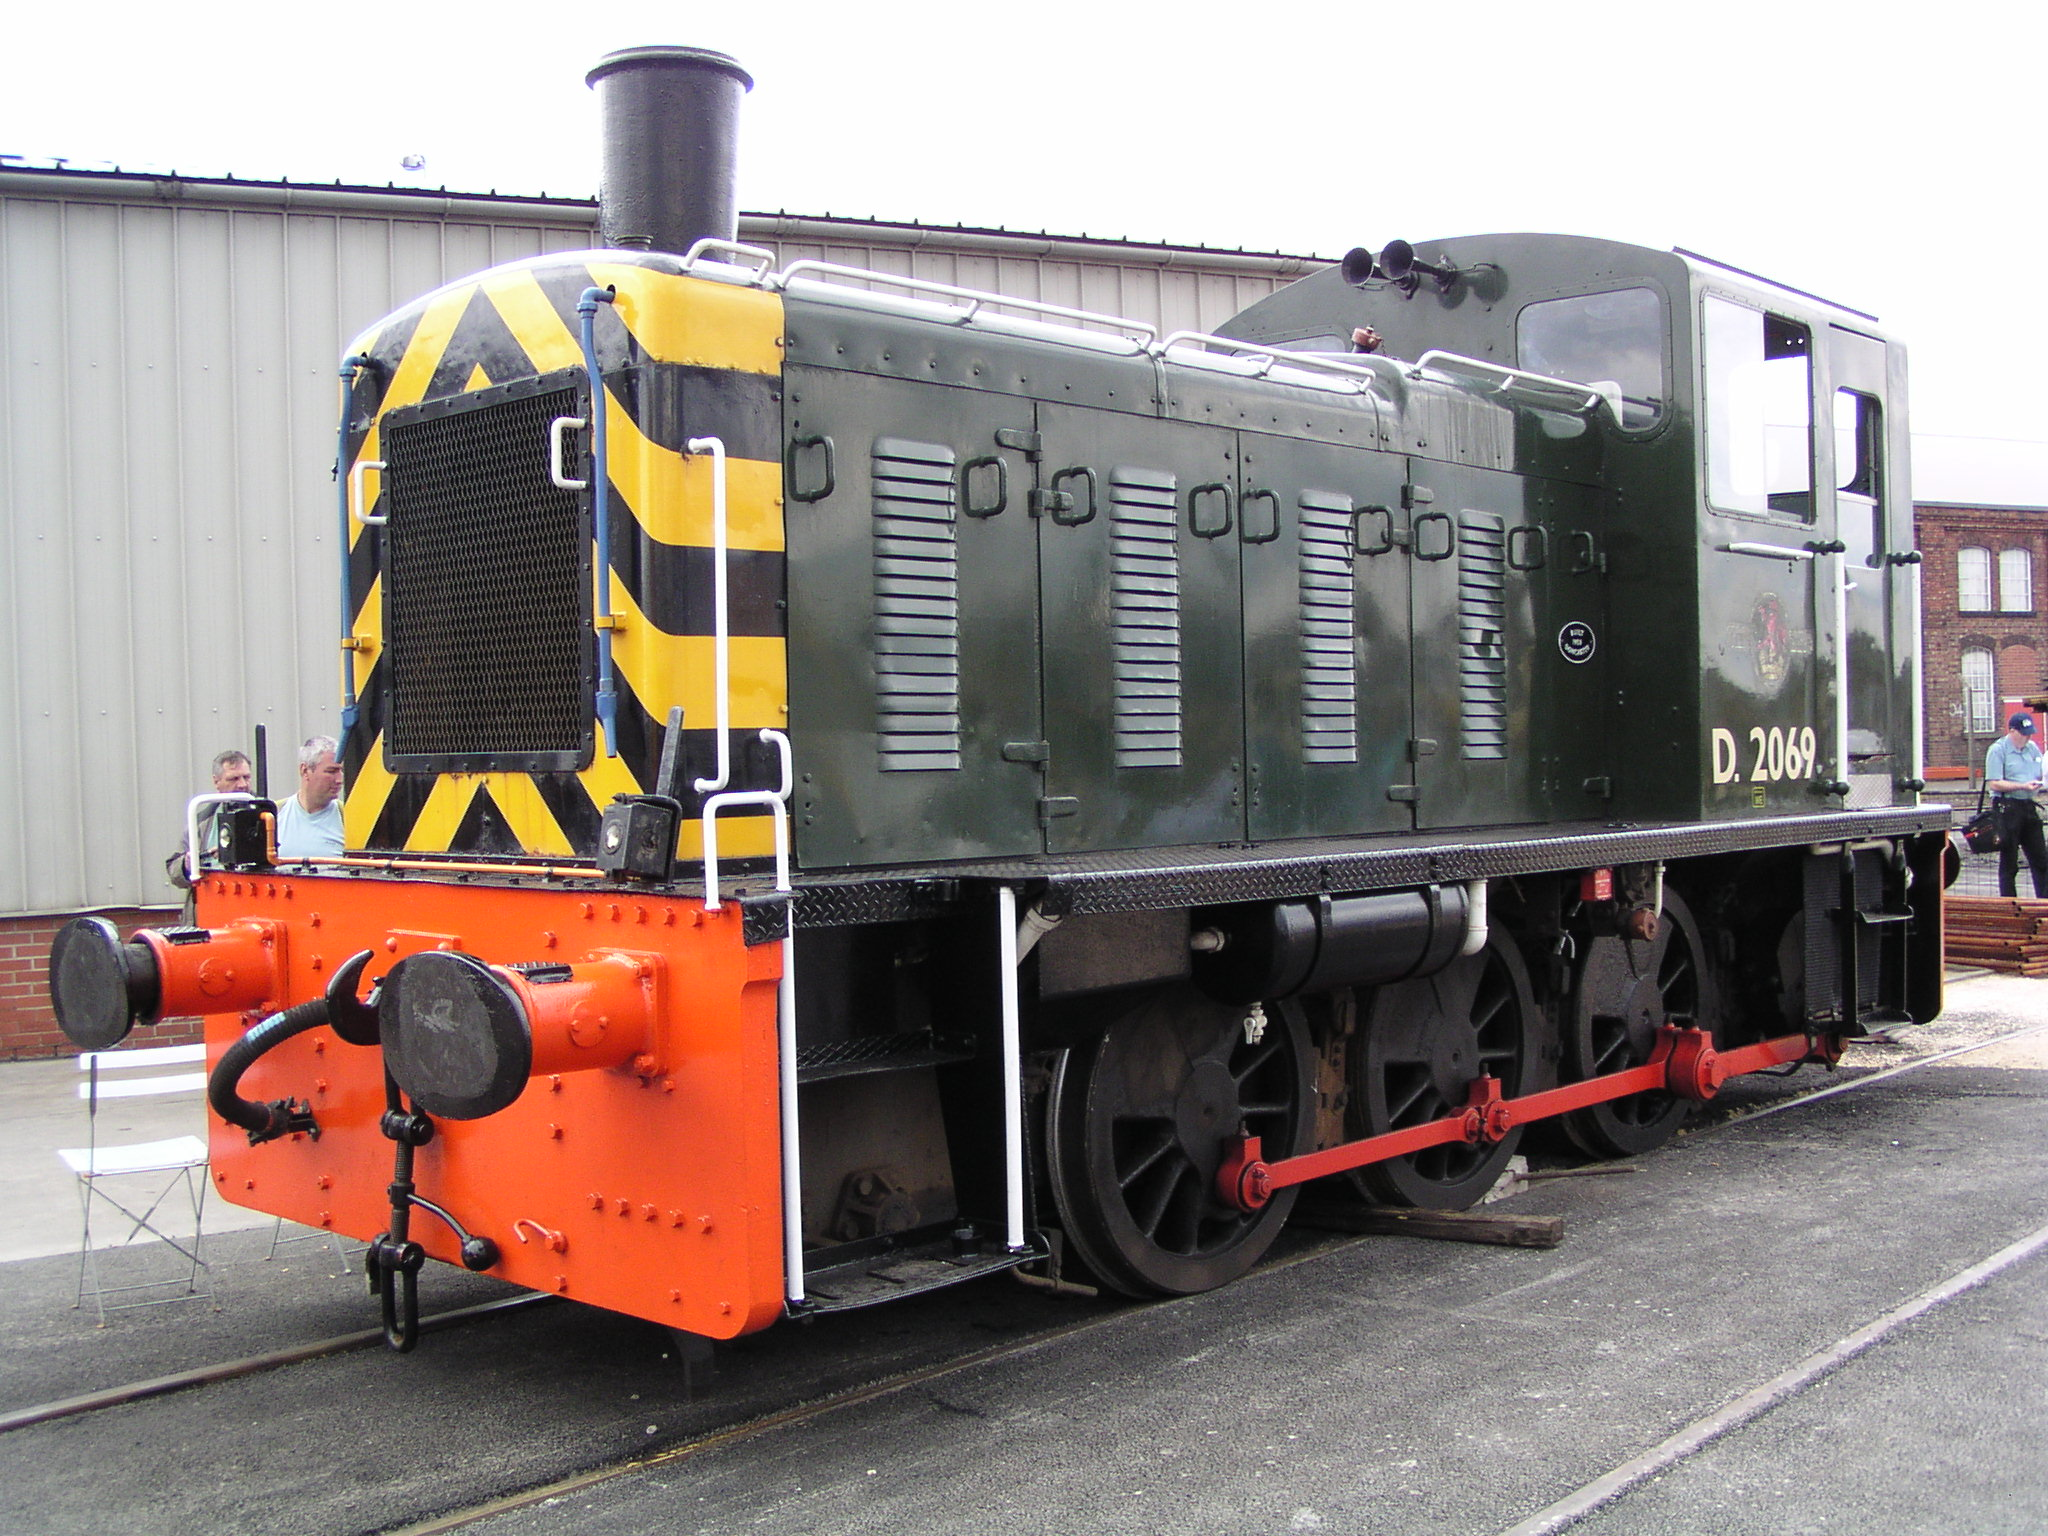 D2069_at_Doncaster_Works.JPG